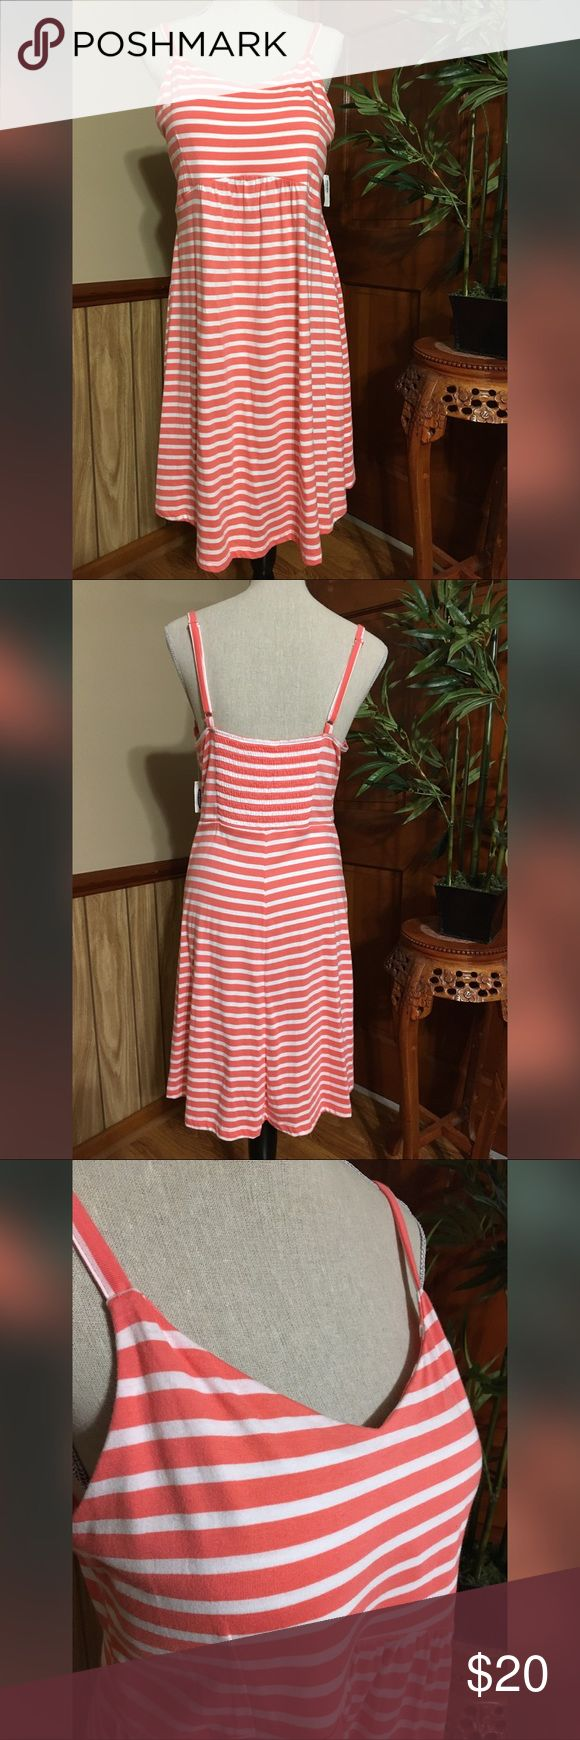 "NWT Old Navy Striped Maternity Dress NWT Old Navy Maternity Dress Size Medium • Striped • Coral Orange in Color • adjustable strap • below knee length  • Nice and super comfy  • 60% Cotton 40% Modal  Approximately Size measurement: Chest (armpit to armpit): 17"" Length (armpit to bottom hem): 28""  ""All Item Come From Smoke Free / Pet Free Home""   Buy with confidence:) Old Navy Dresses"